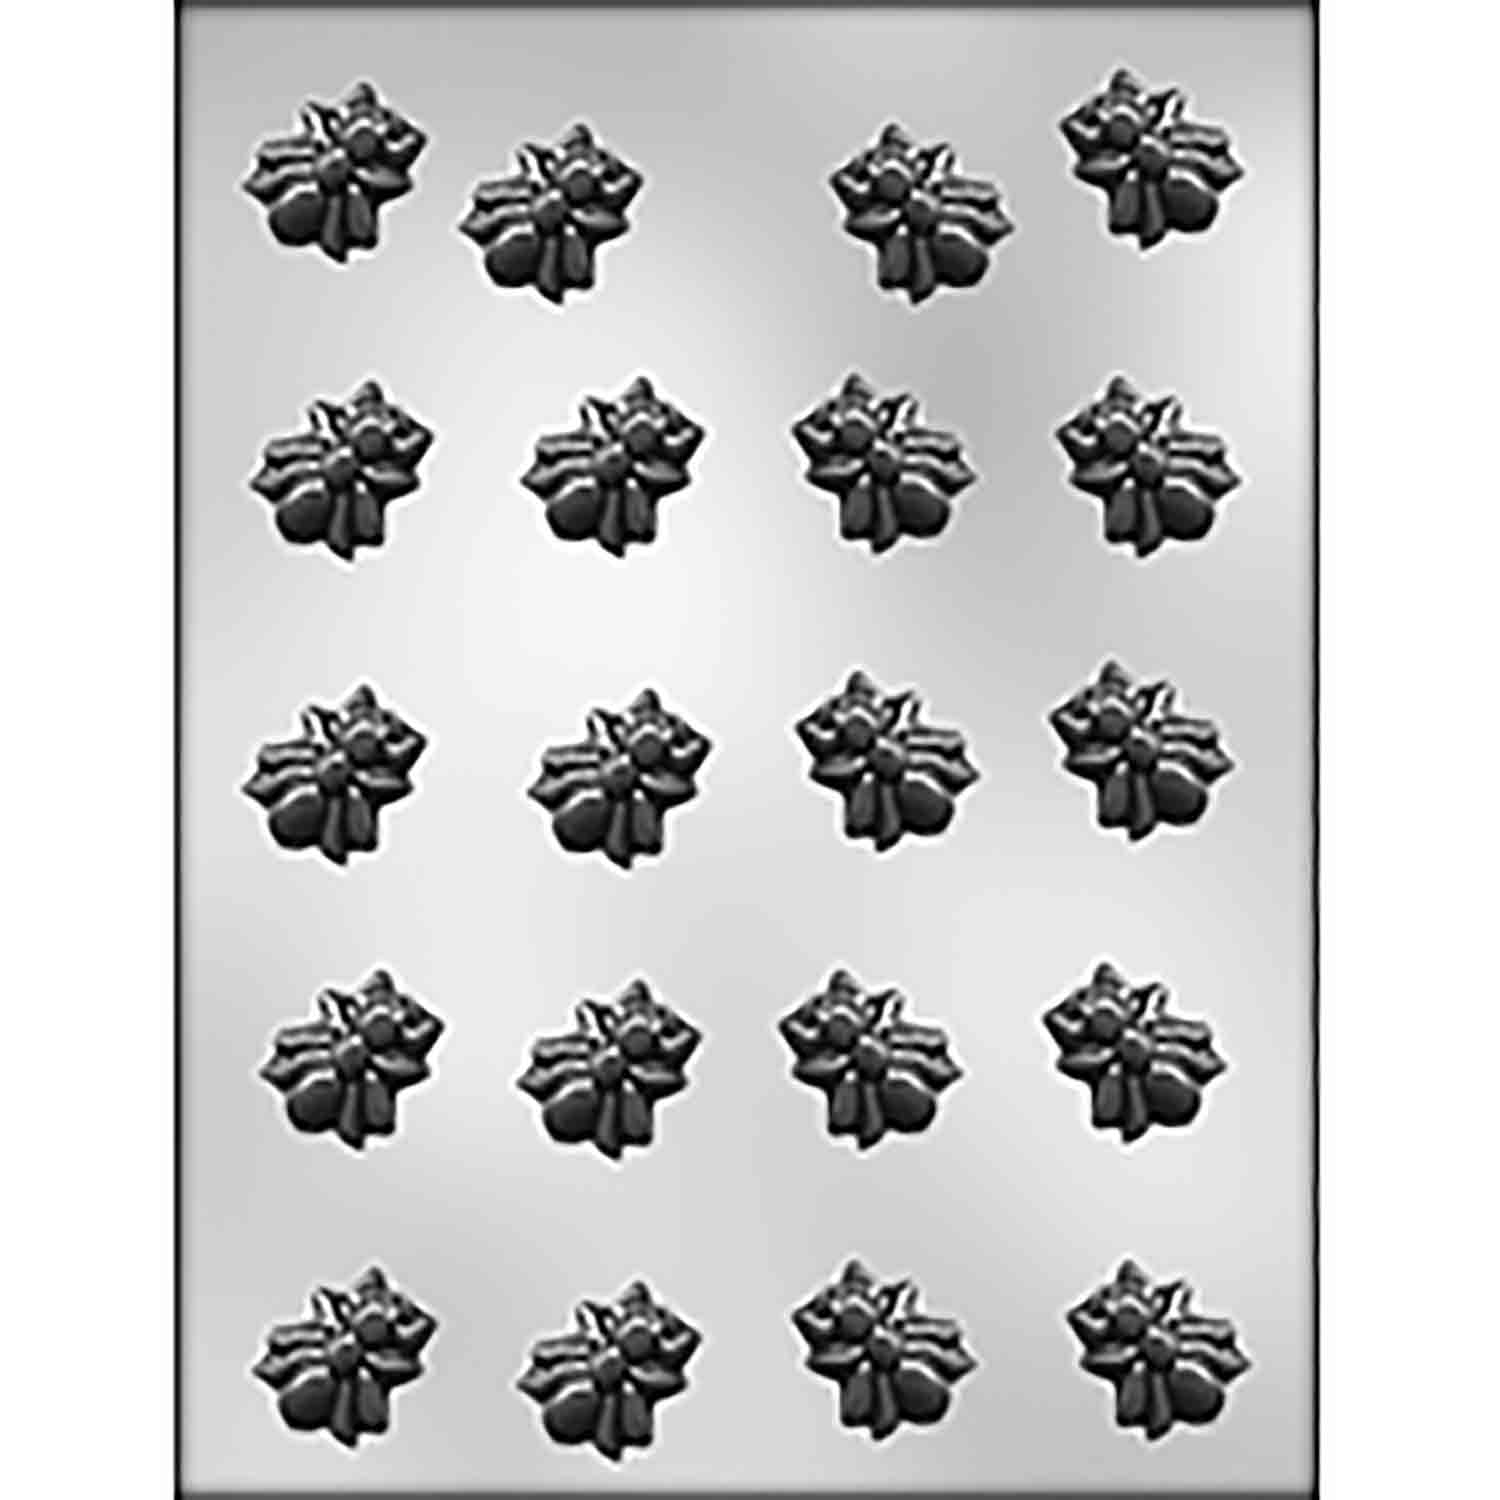 Spider Chocolate Candy Mold